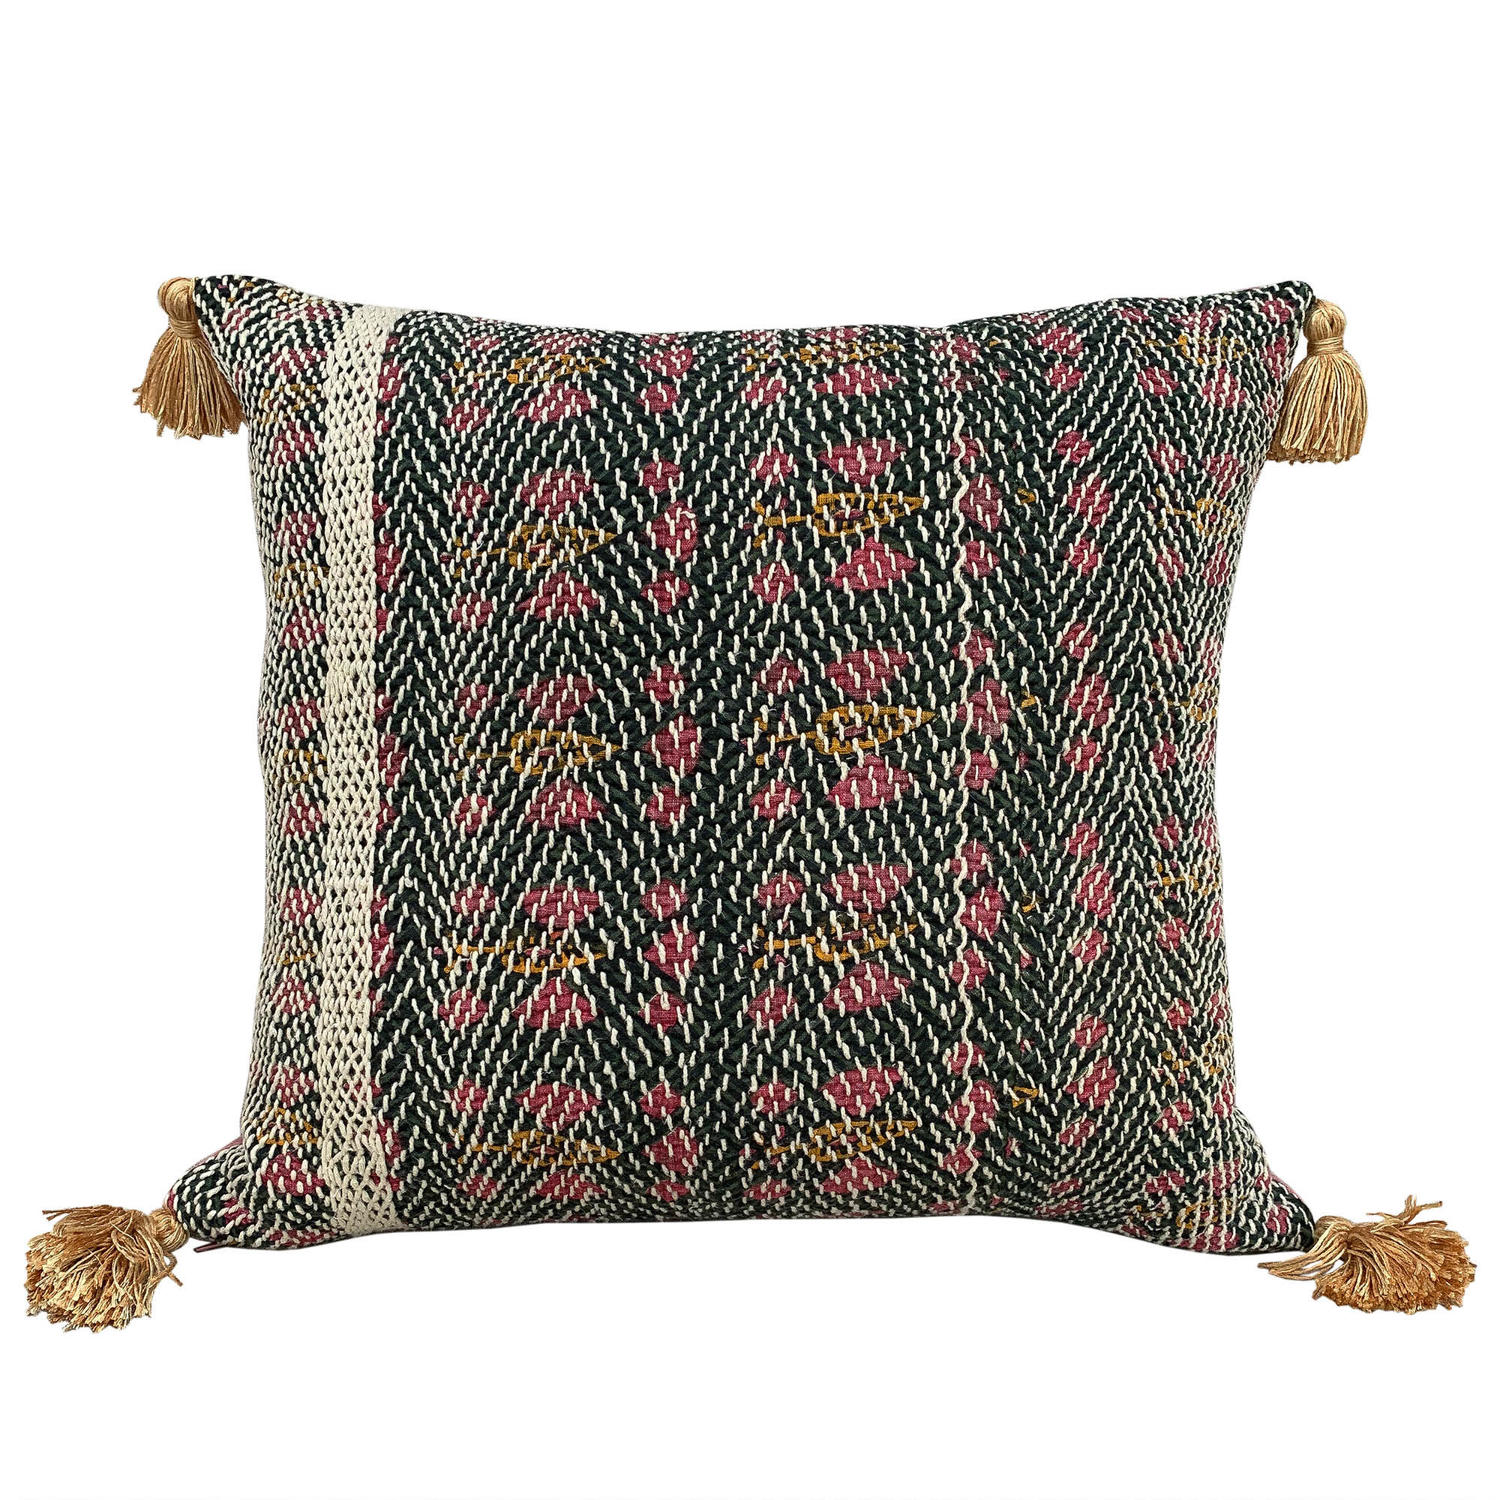 Green and Pink Banjara Cushions with Tassels